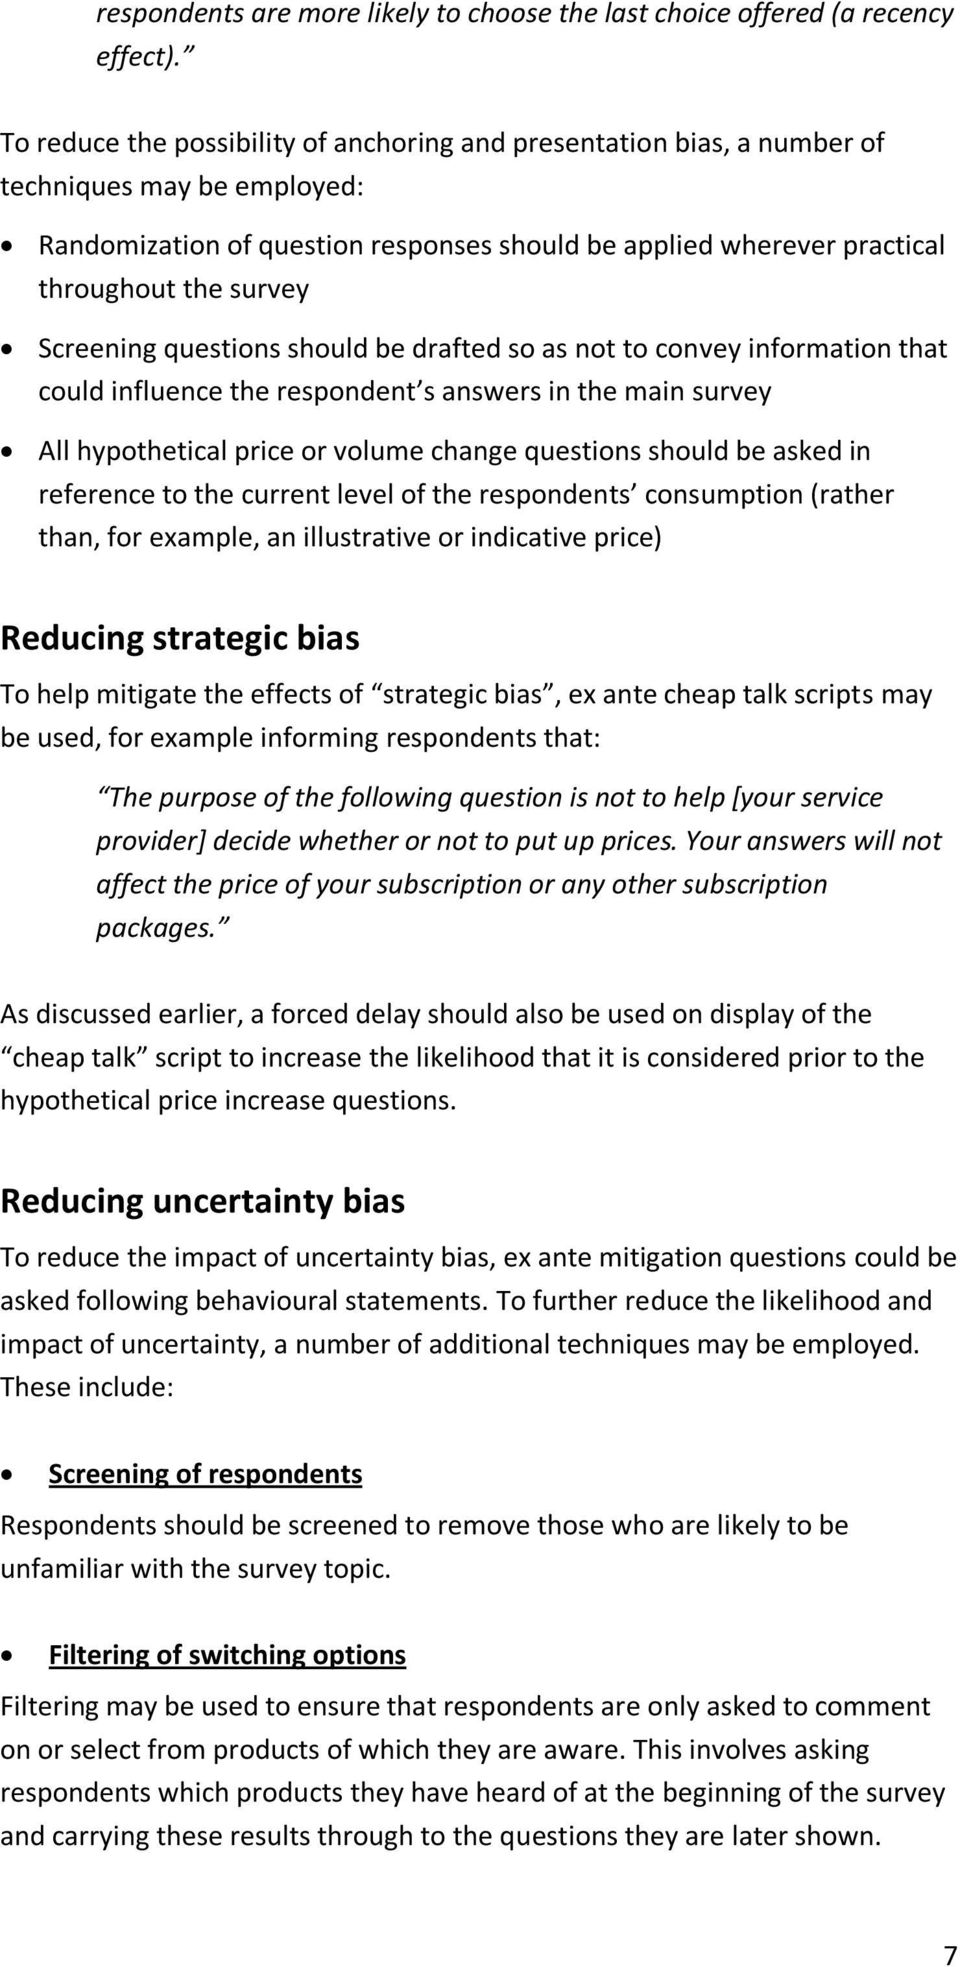 Screening questions should be drafted so as not to convey information that could influence the respondent s answers in the main survey All hypothetical price or volume change questions should be